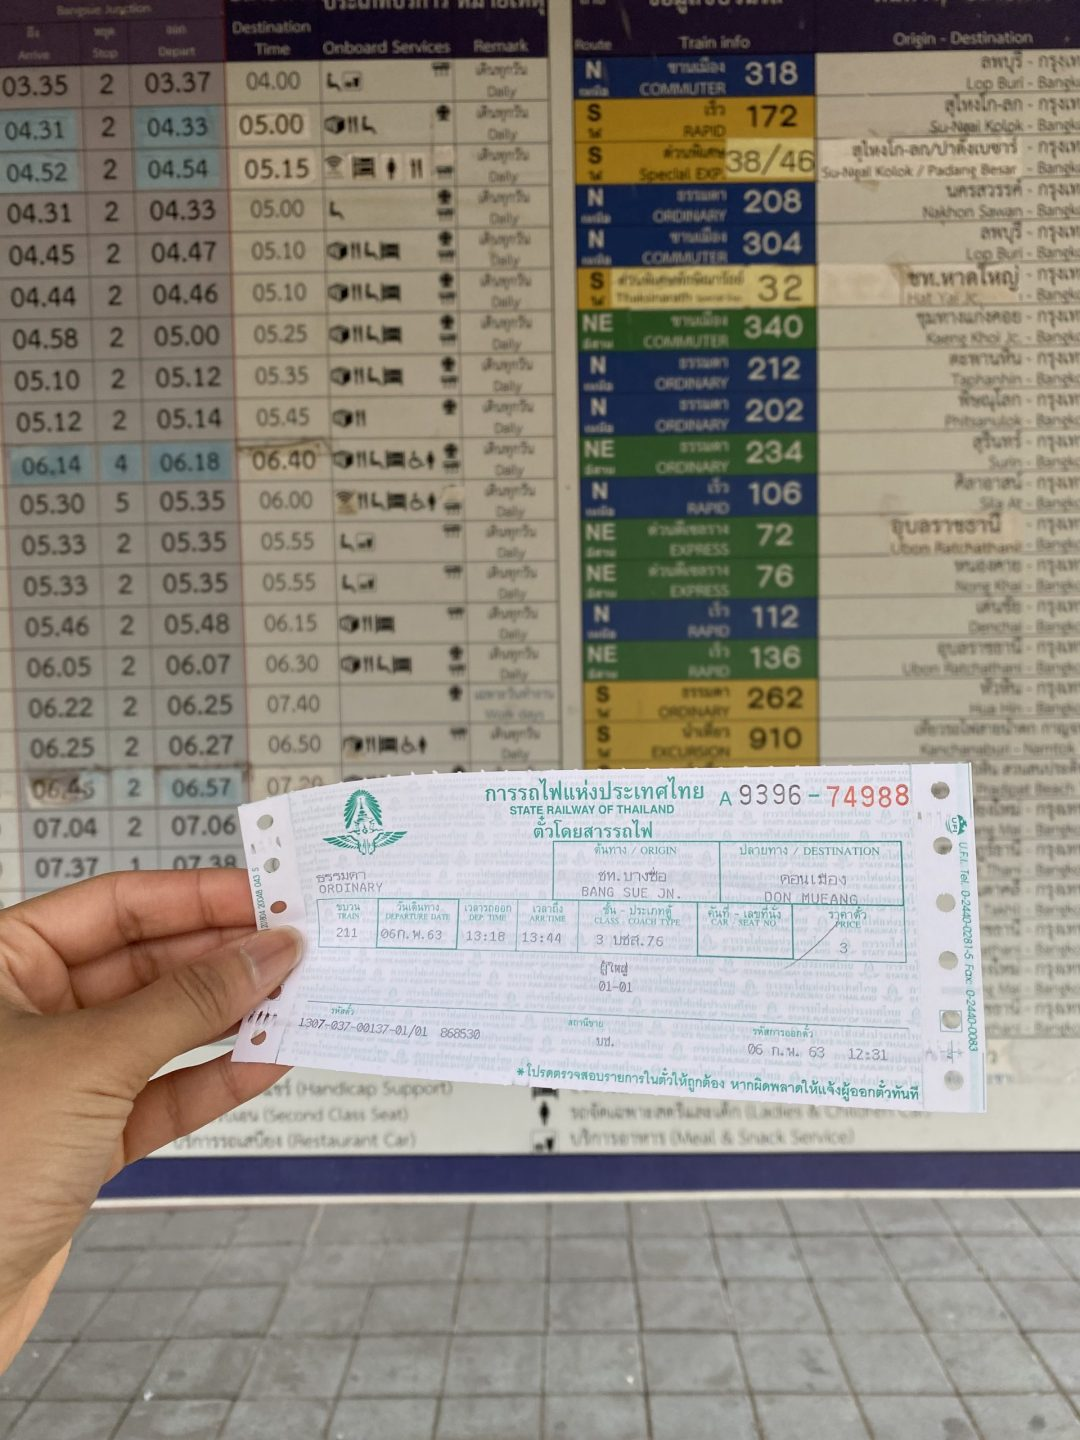 train ticket for the State Railway of Thailand, taken in Bangkok's Bang Sue station